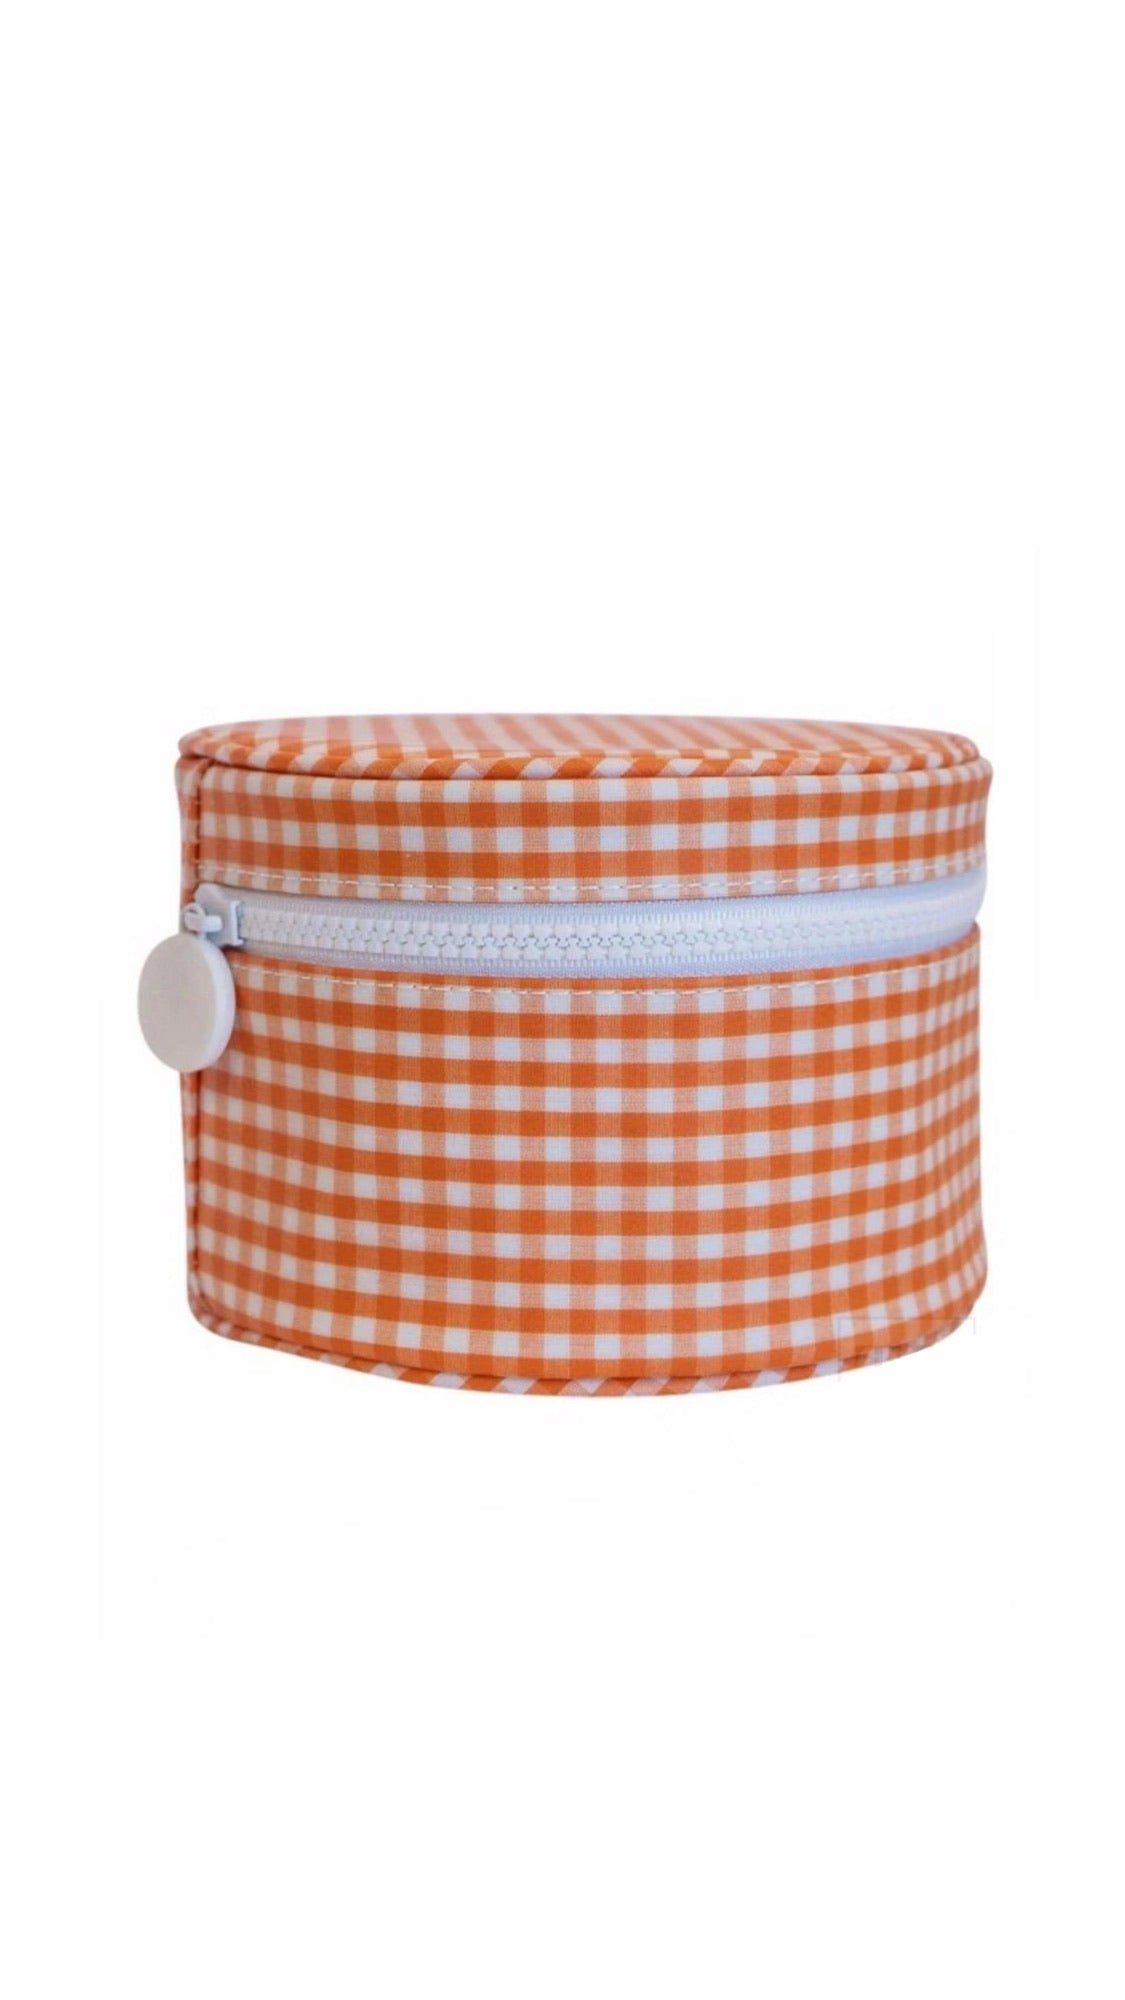 ROUNDUP GINGHAM ZIP TOP